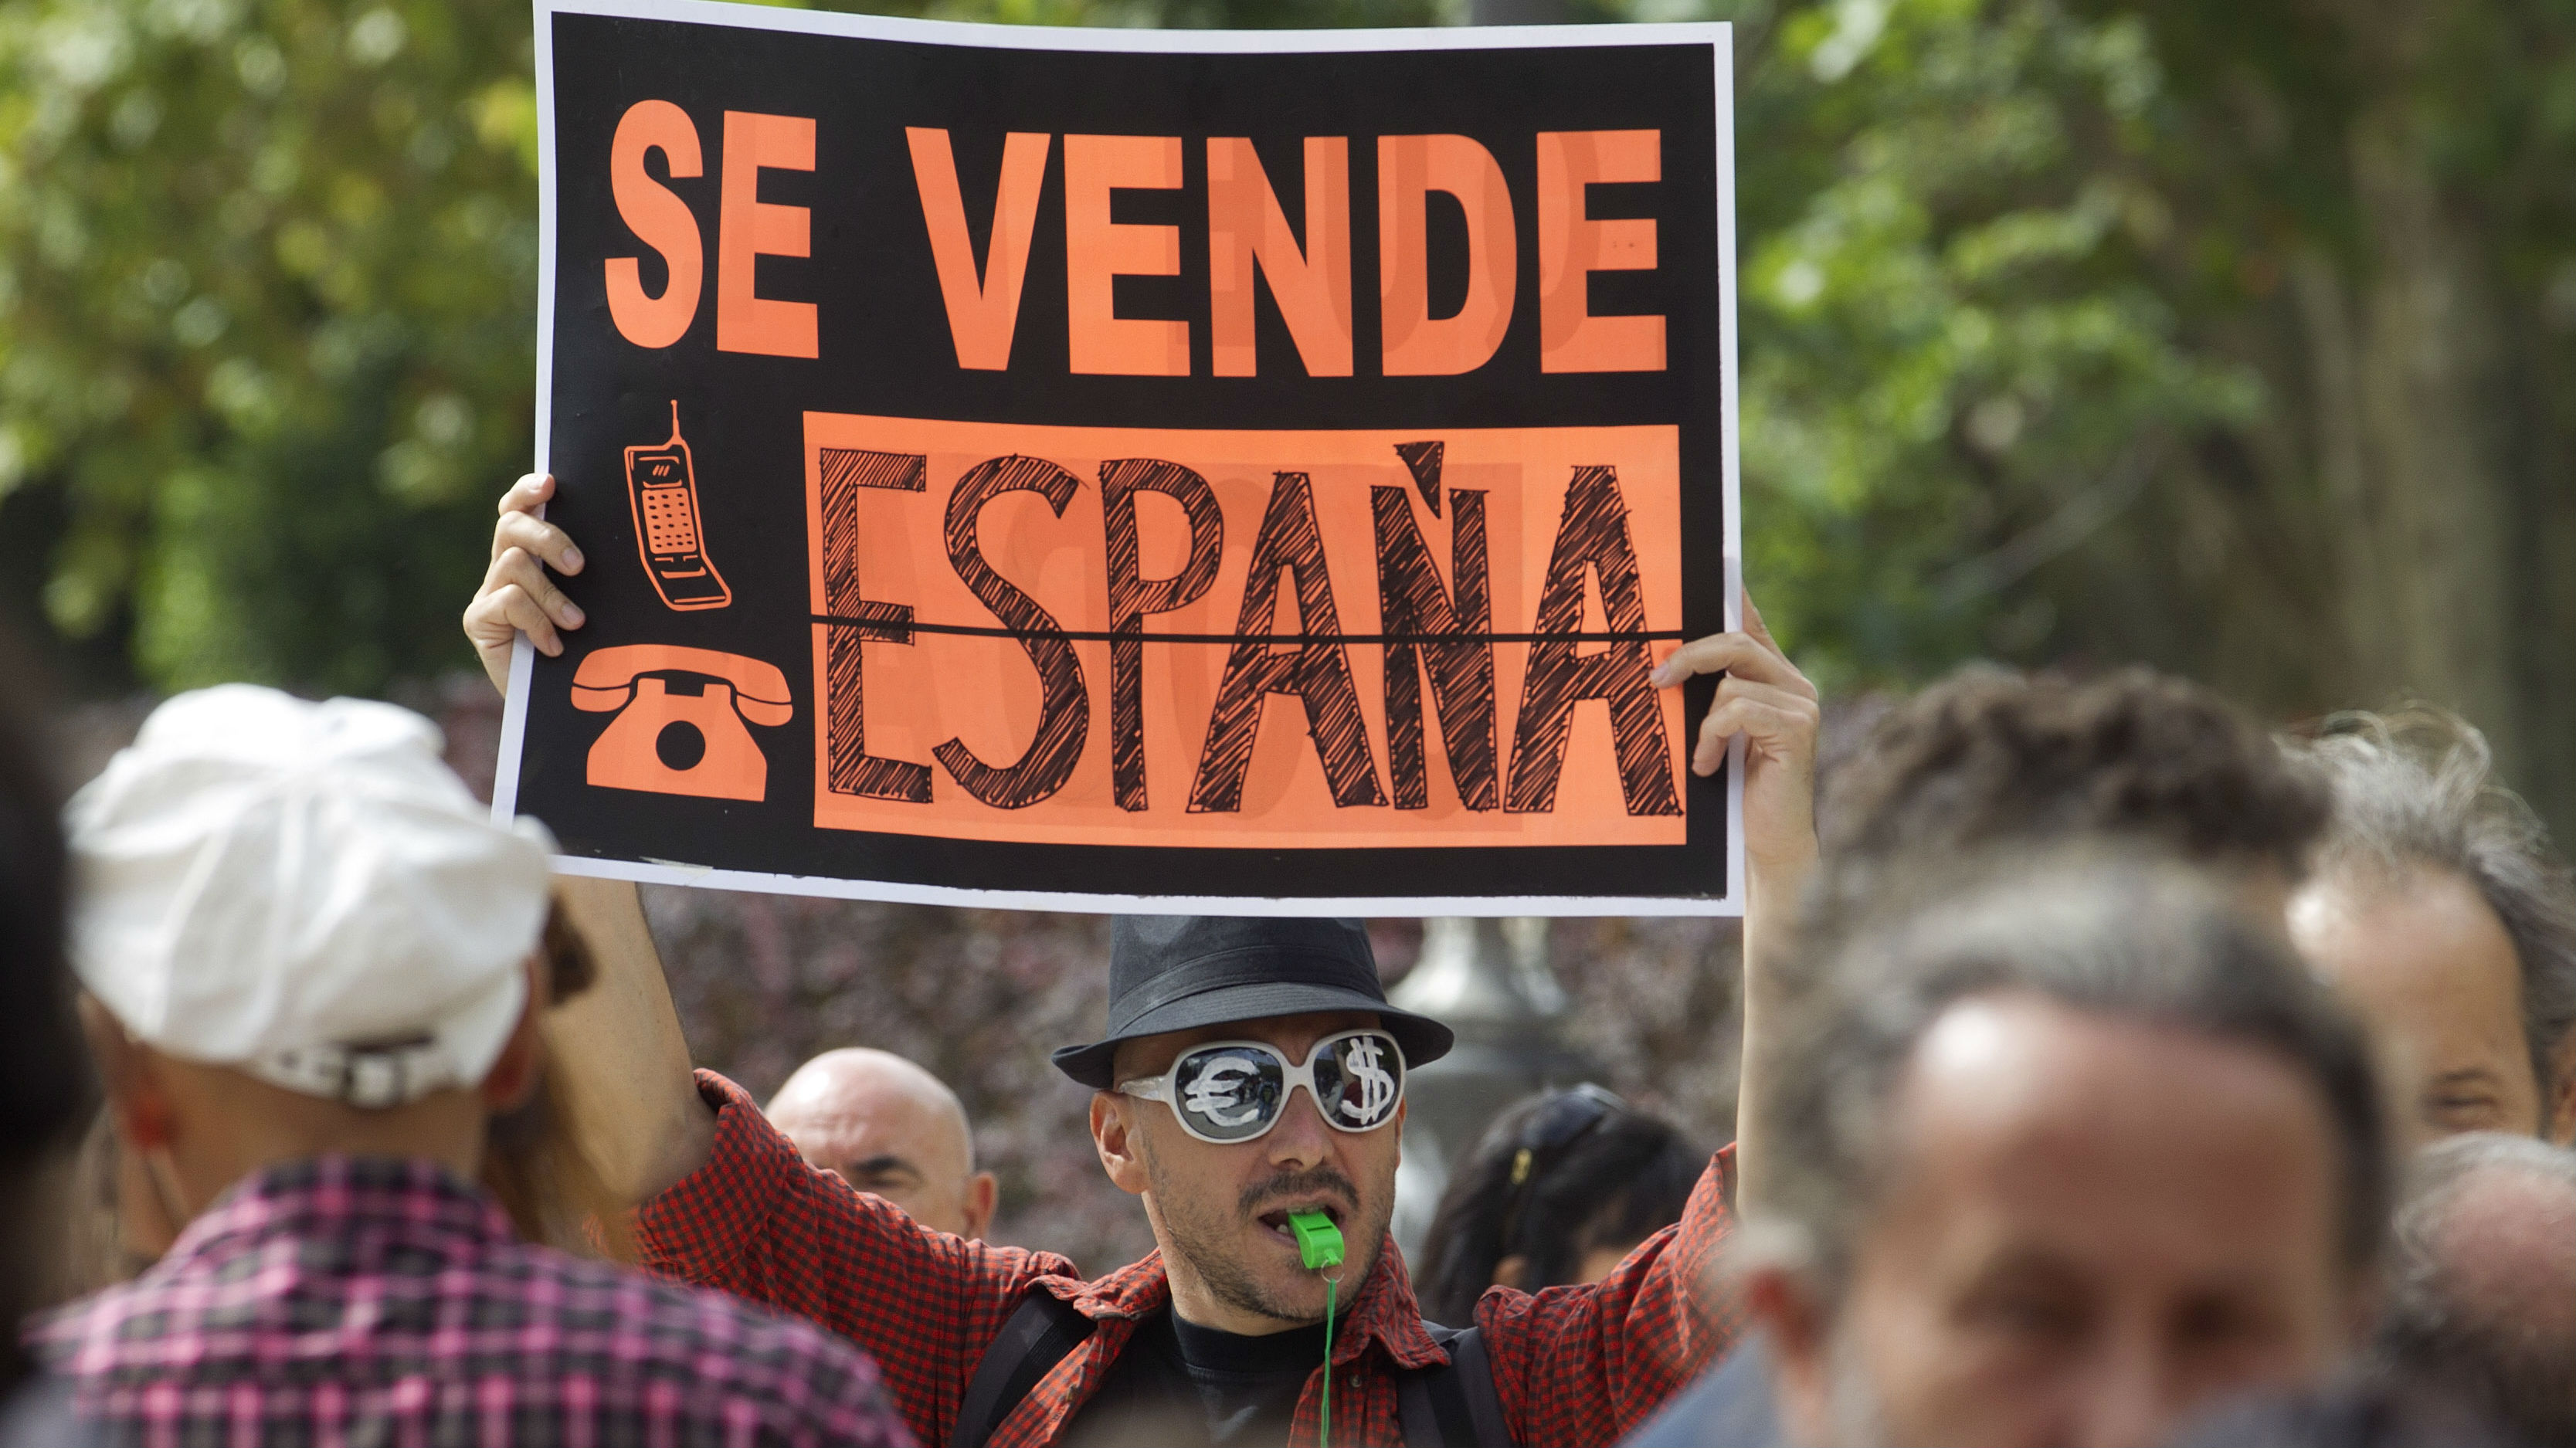 Protestor in Madrid says Spain is for sale.